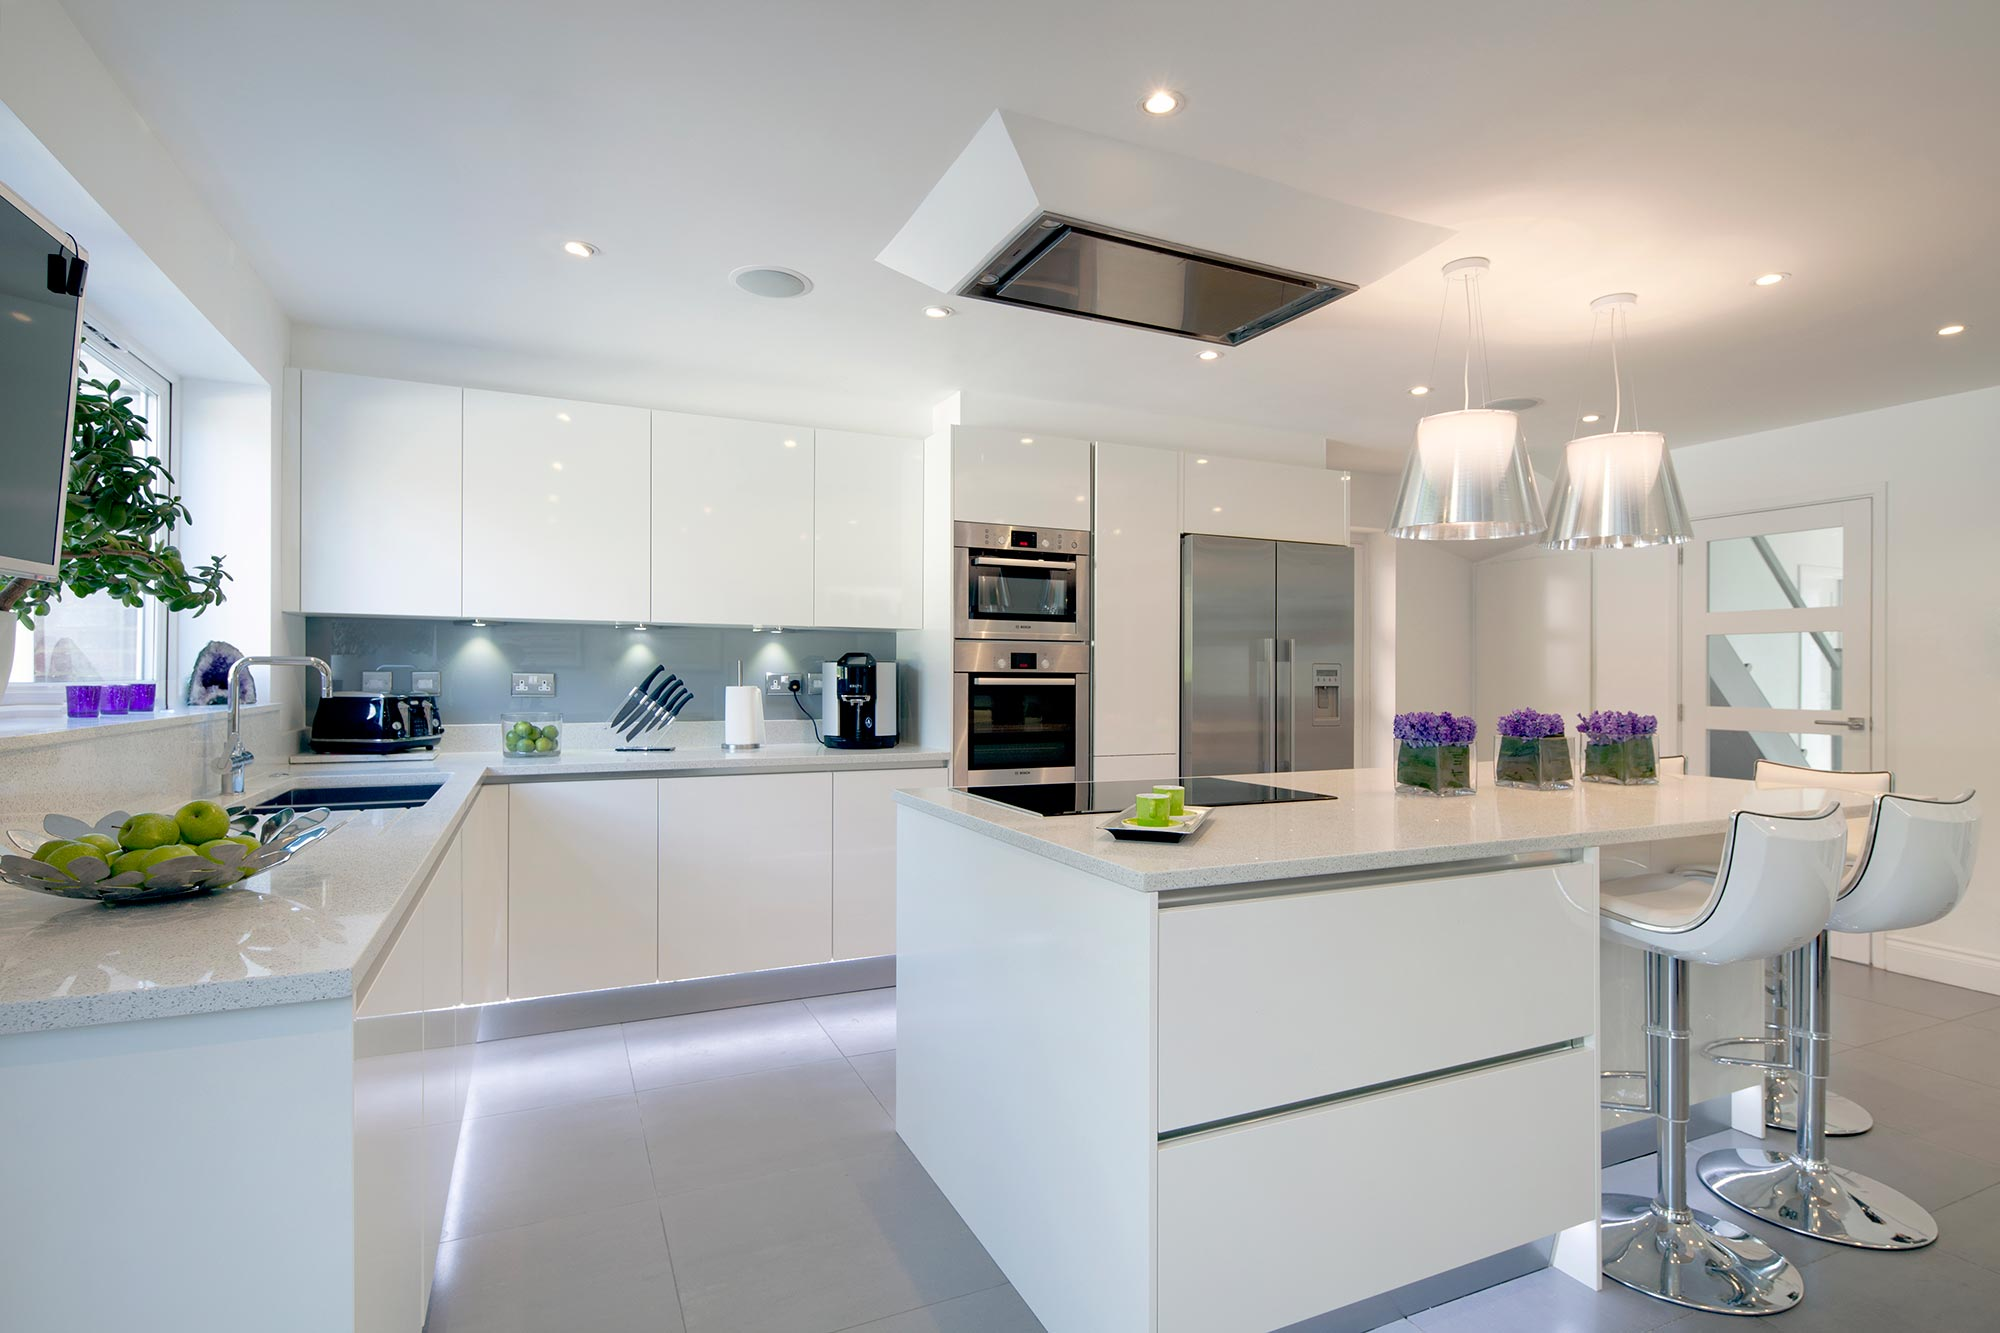 Braverman Kitchens | Our Projects - Braverman Kitchens